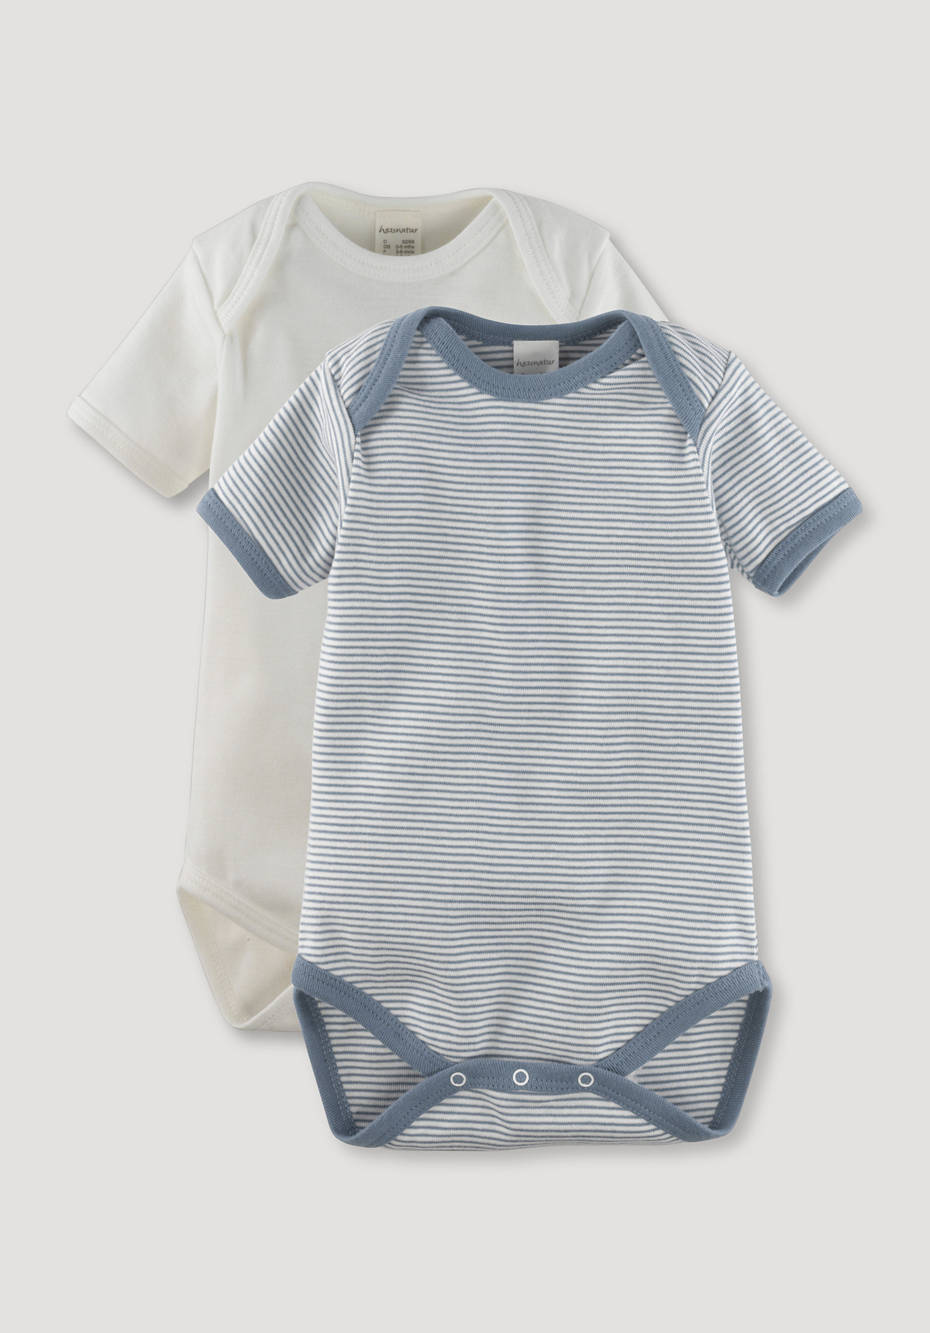 Body set of 2 made of pure organic cotton